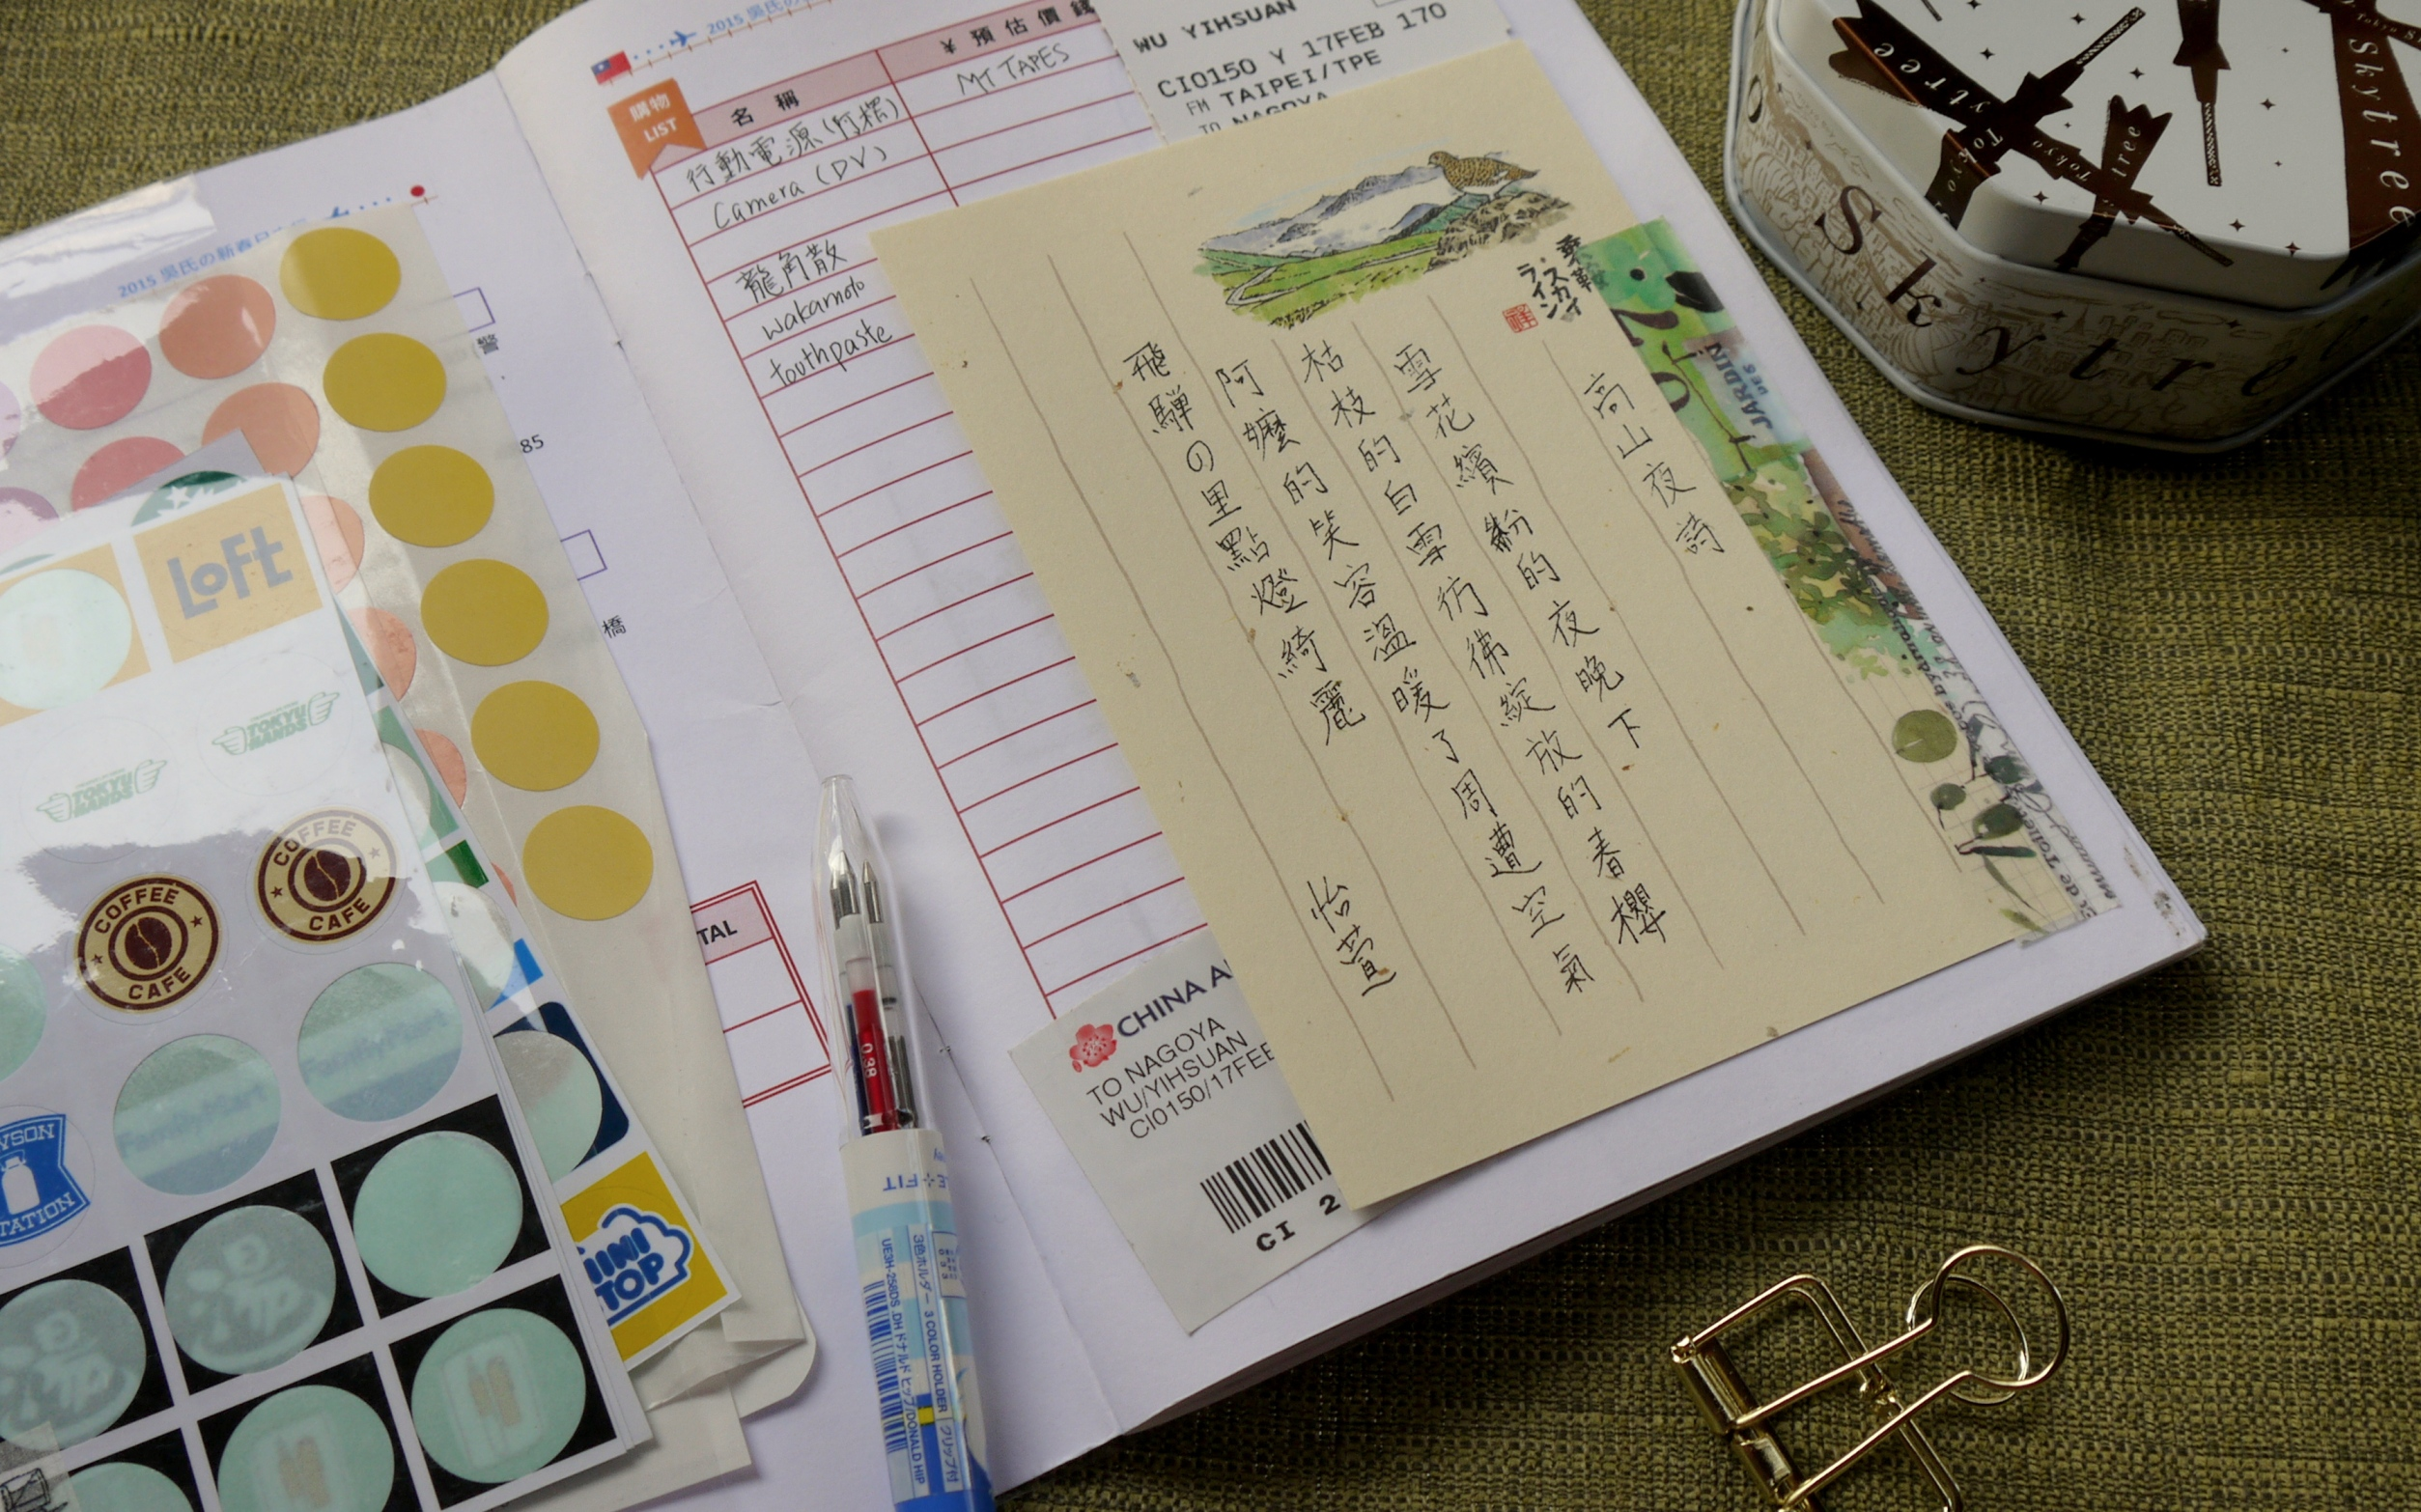 How to scrapbook travel - In This Travel Scrapbook I Will Also Write Down Short Diary Entries Doodle In Blank Places And Stick In Scraps From Interesting Brochures And Tickets To